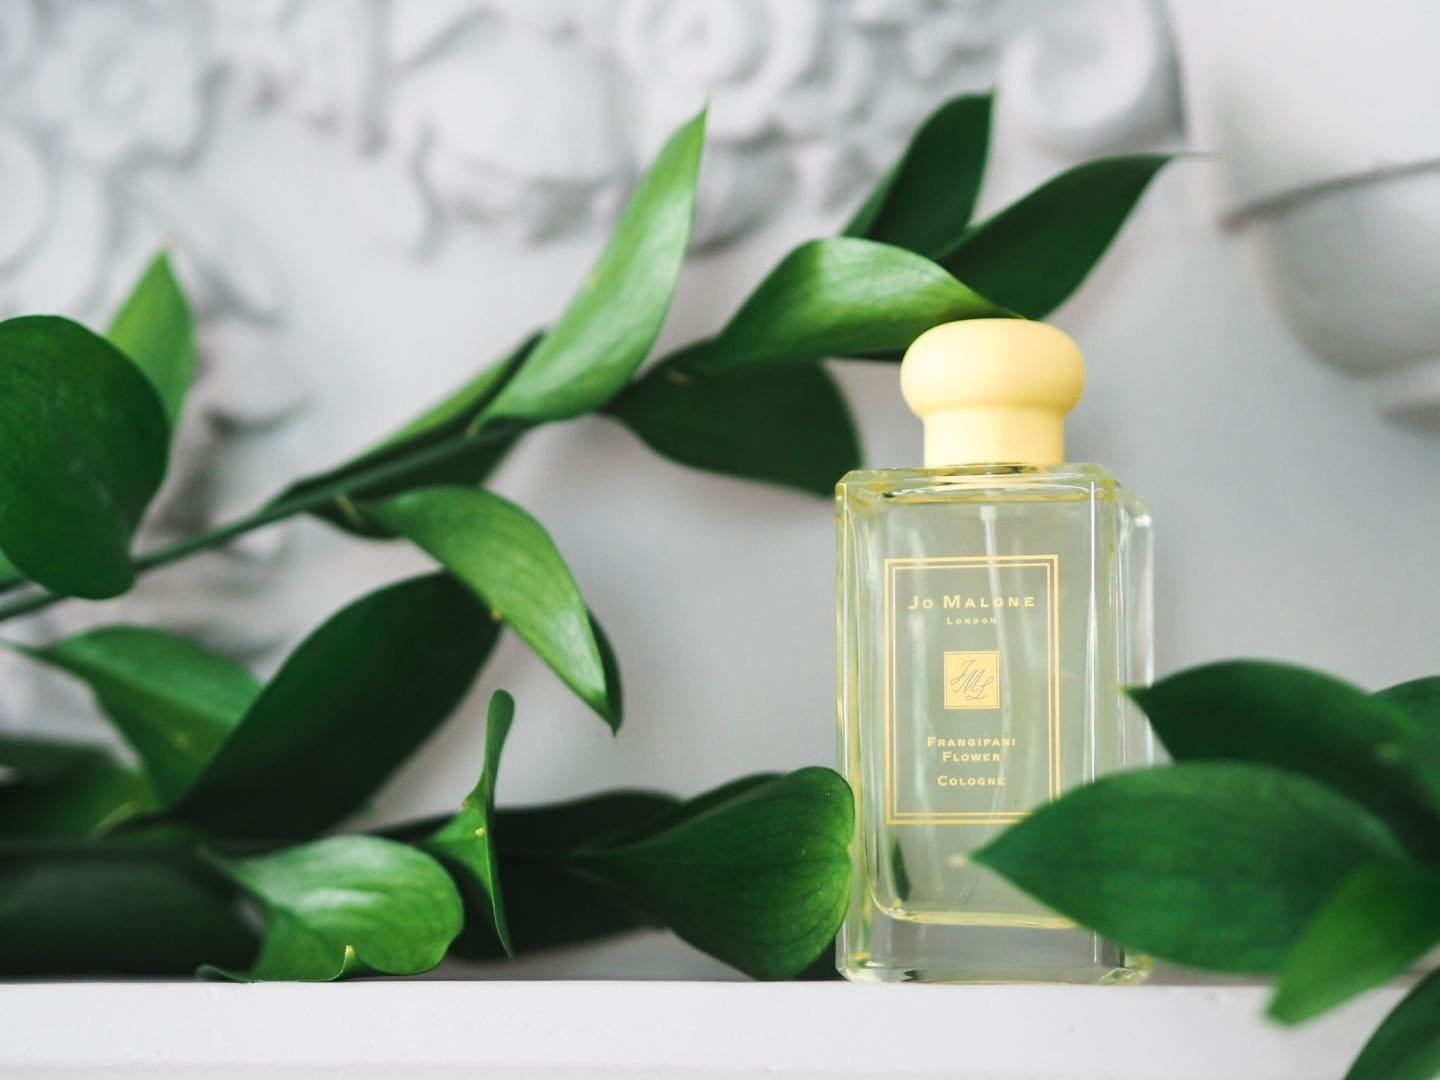 Jo Malone London 'Blossoms Collection'  'Frangipani Flower' Collection perfume 2019 new release fragrance review